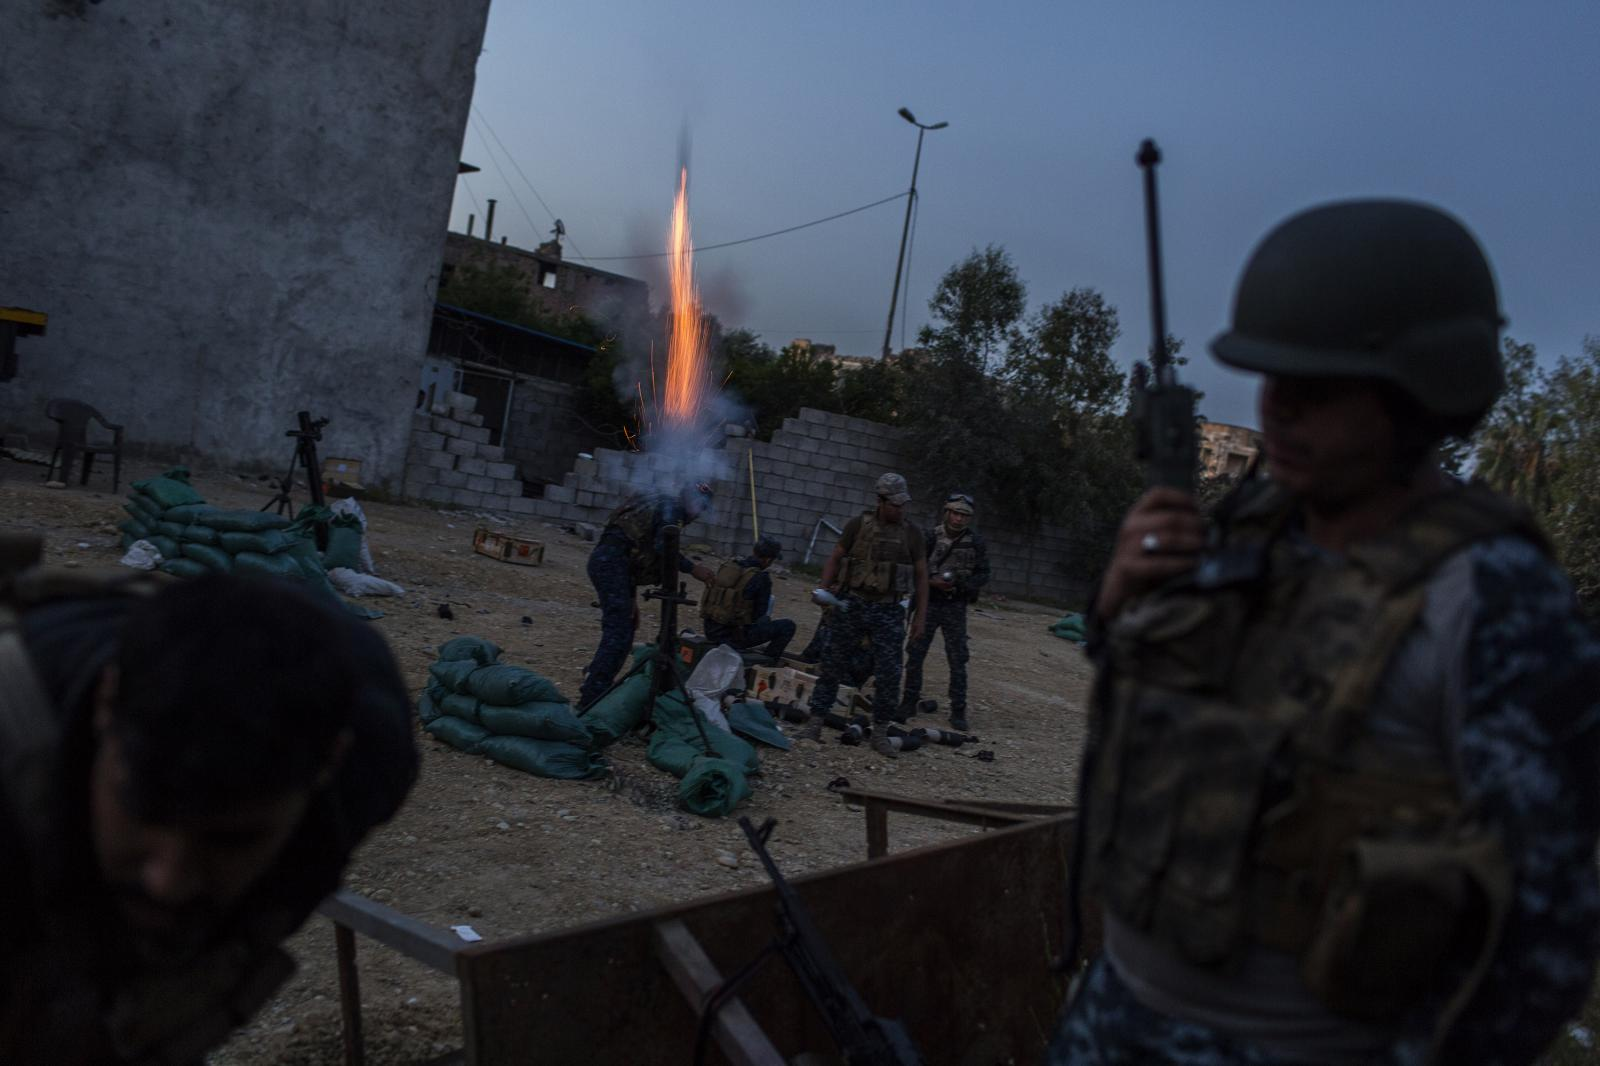 Iraqi Federal Police fends off an ISIL´s night incursion and counterattacks in a West Mosul position. Iraq. April 2017. Diego Ibarra Sánchez